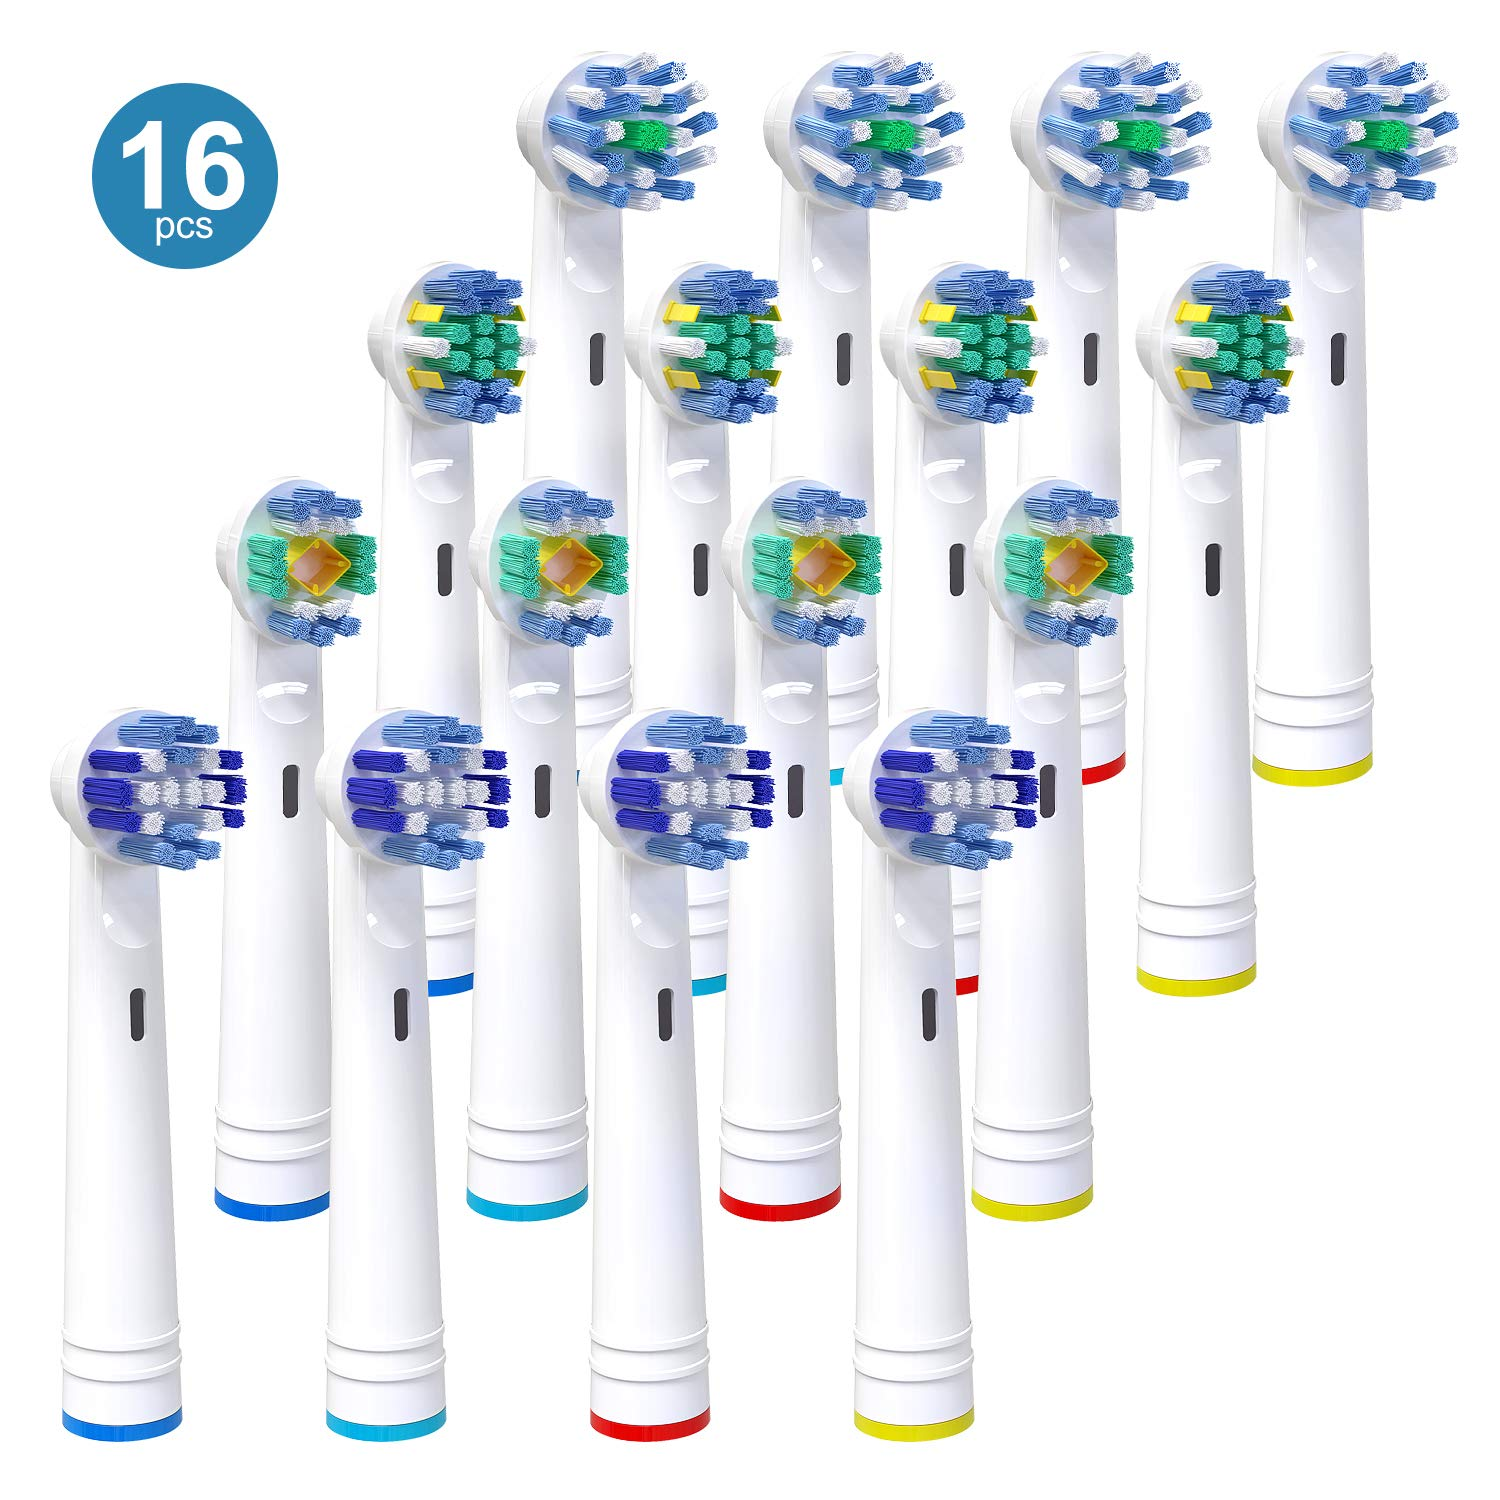 Replacement Toothbrush Heads for Oral B, iTrunk 16 Pack Electric Toothbrush Heads Compatible with Pro...